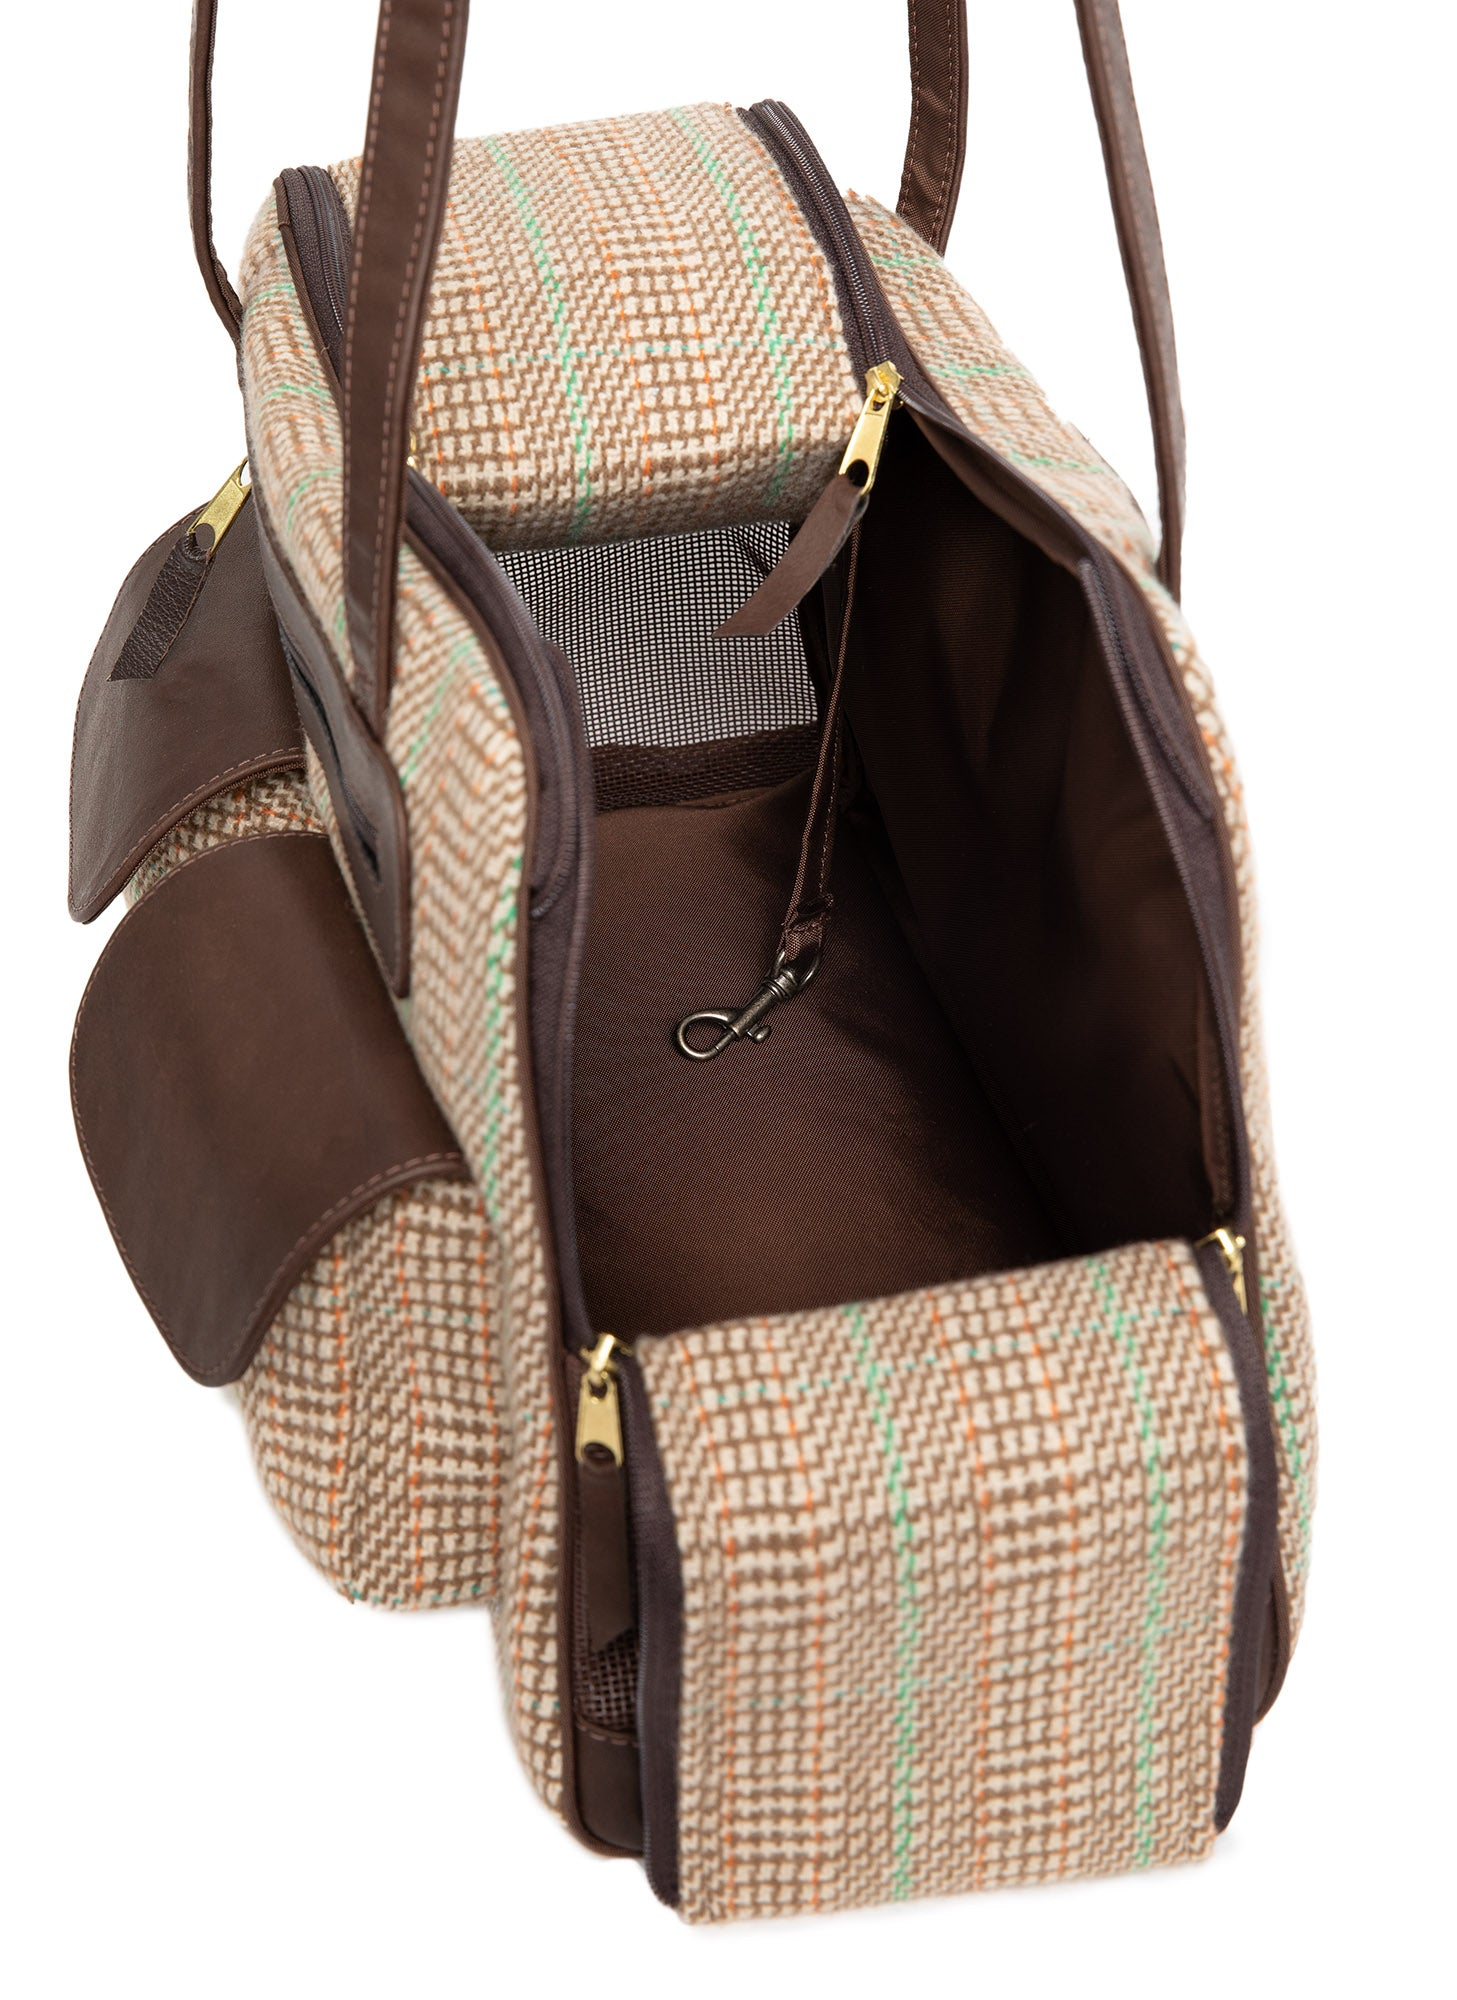 Fall - Dog Carrier - Cashmere Dog Carrier  - Beige & Green Plaid